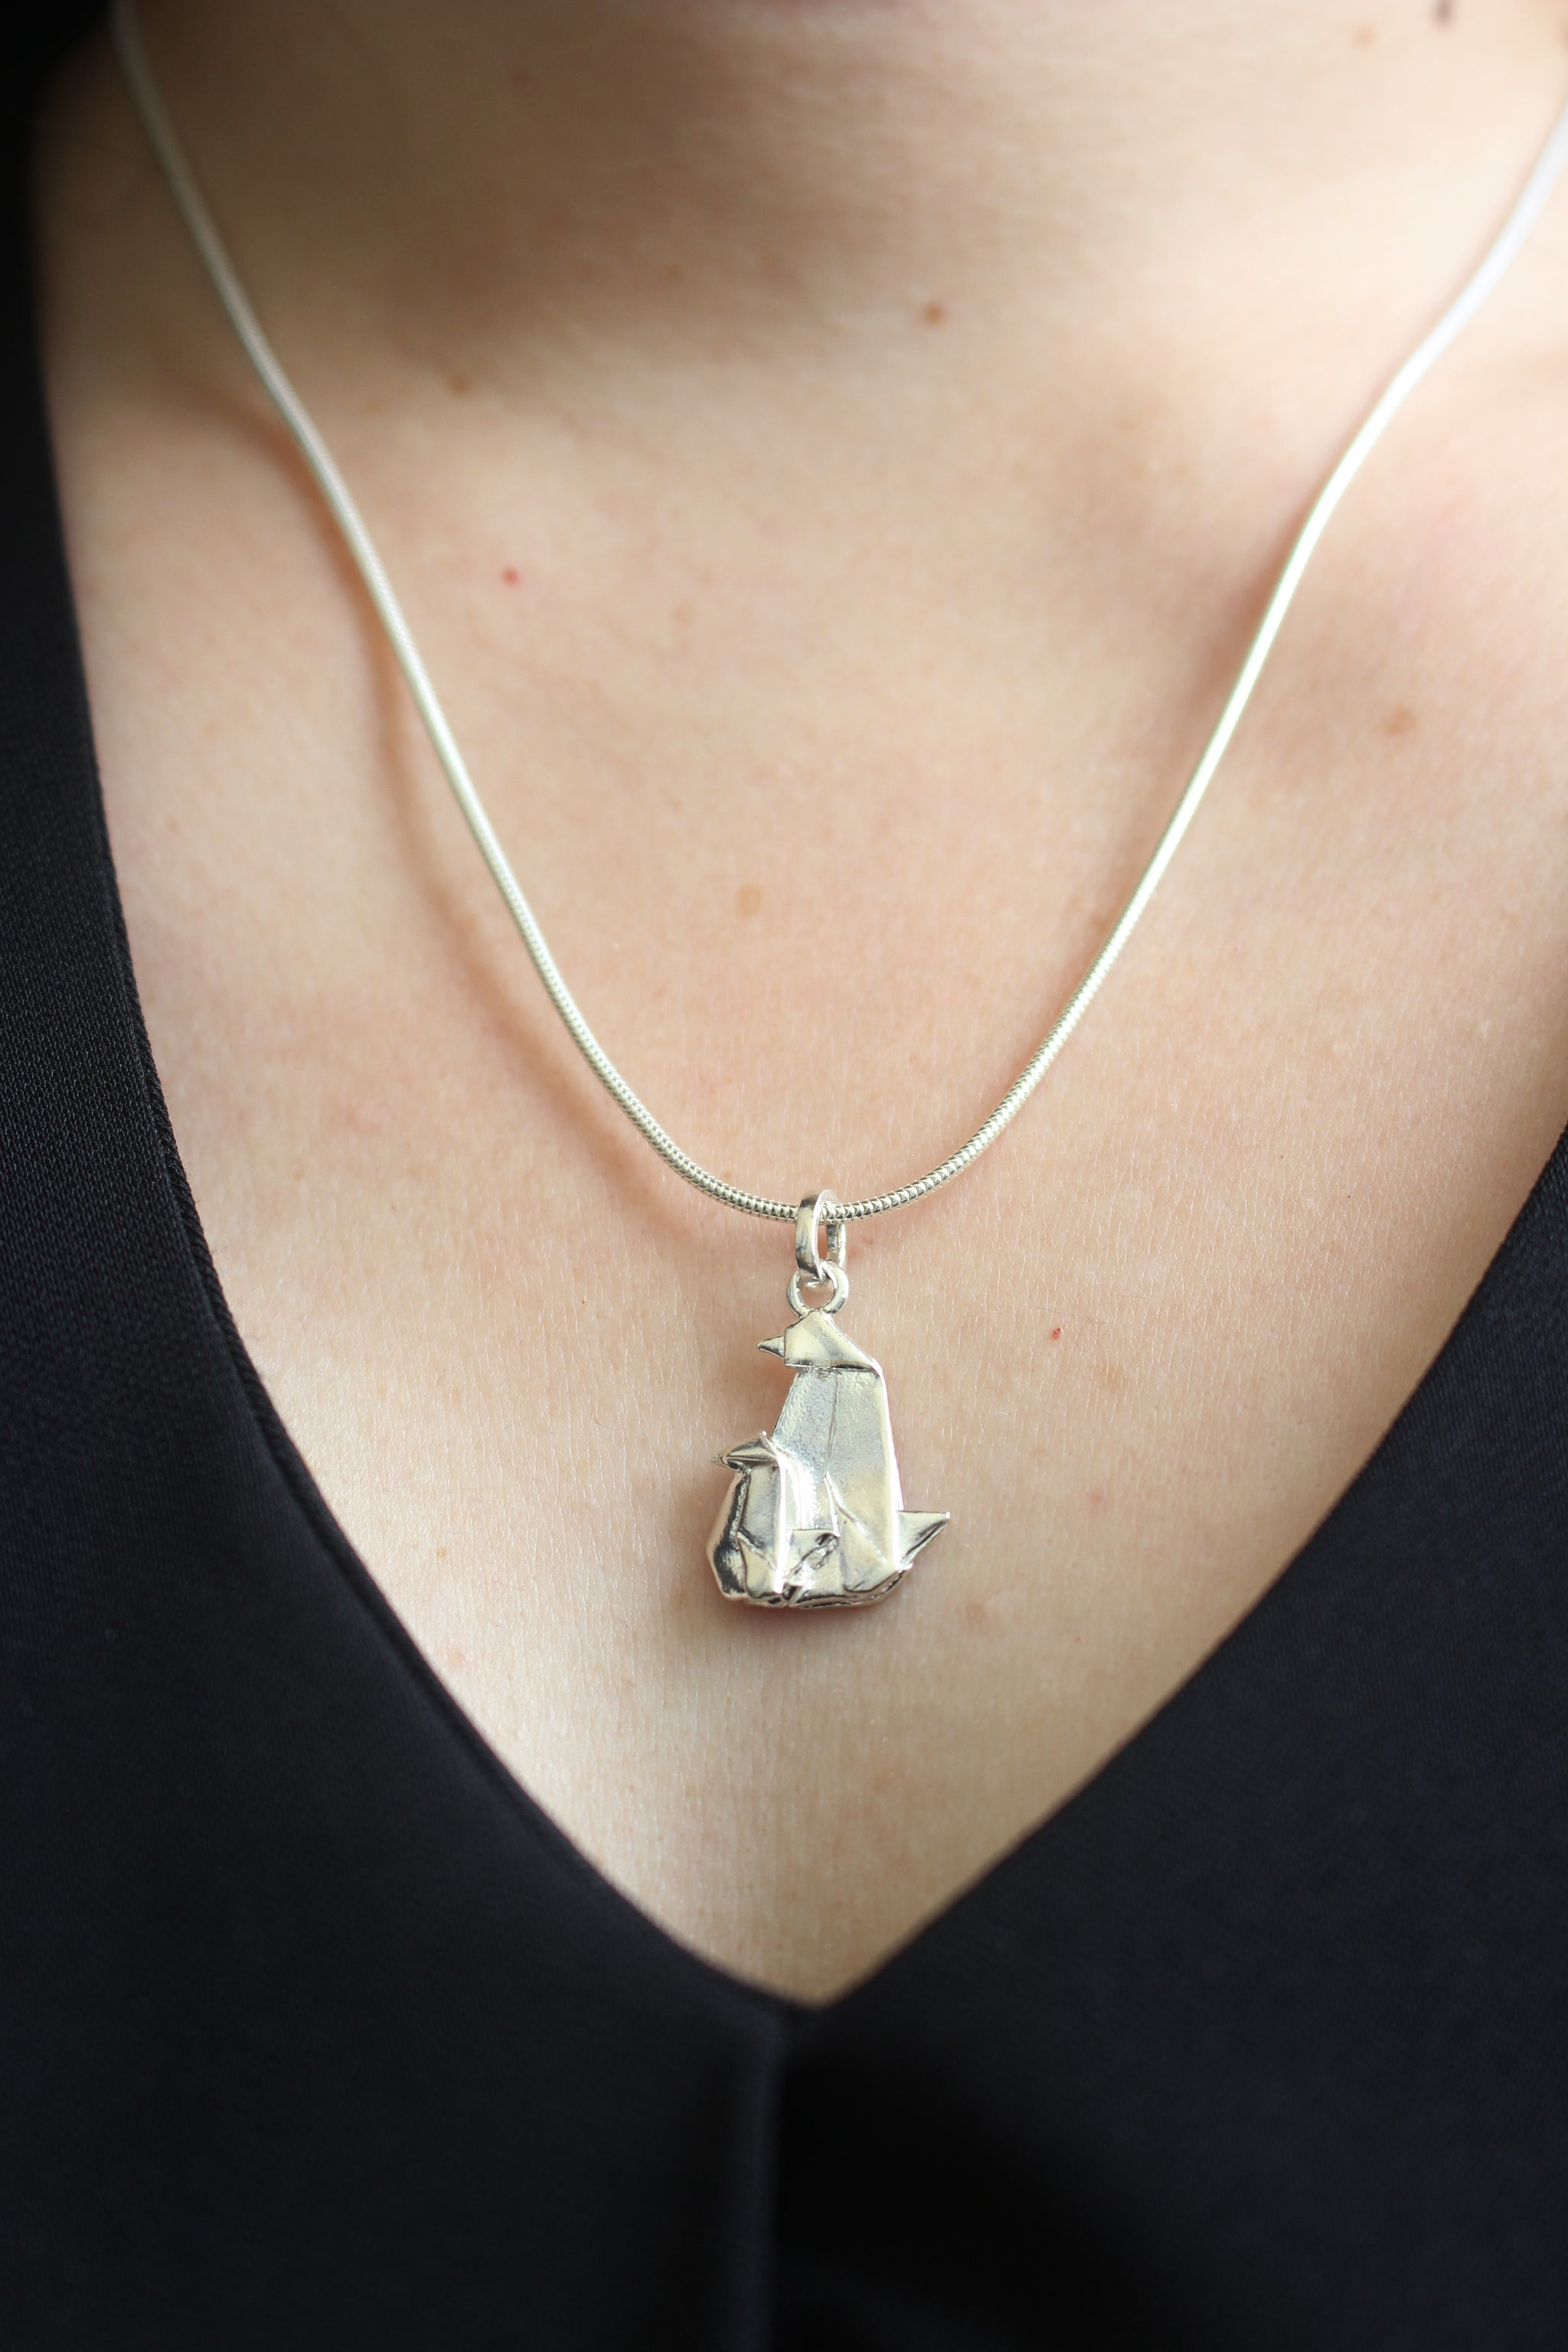 Silver Origami Penguin Necklace